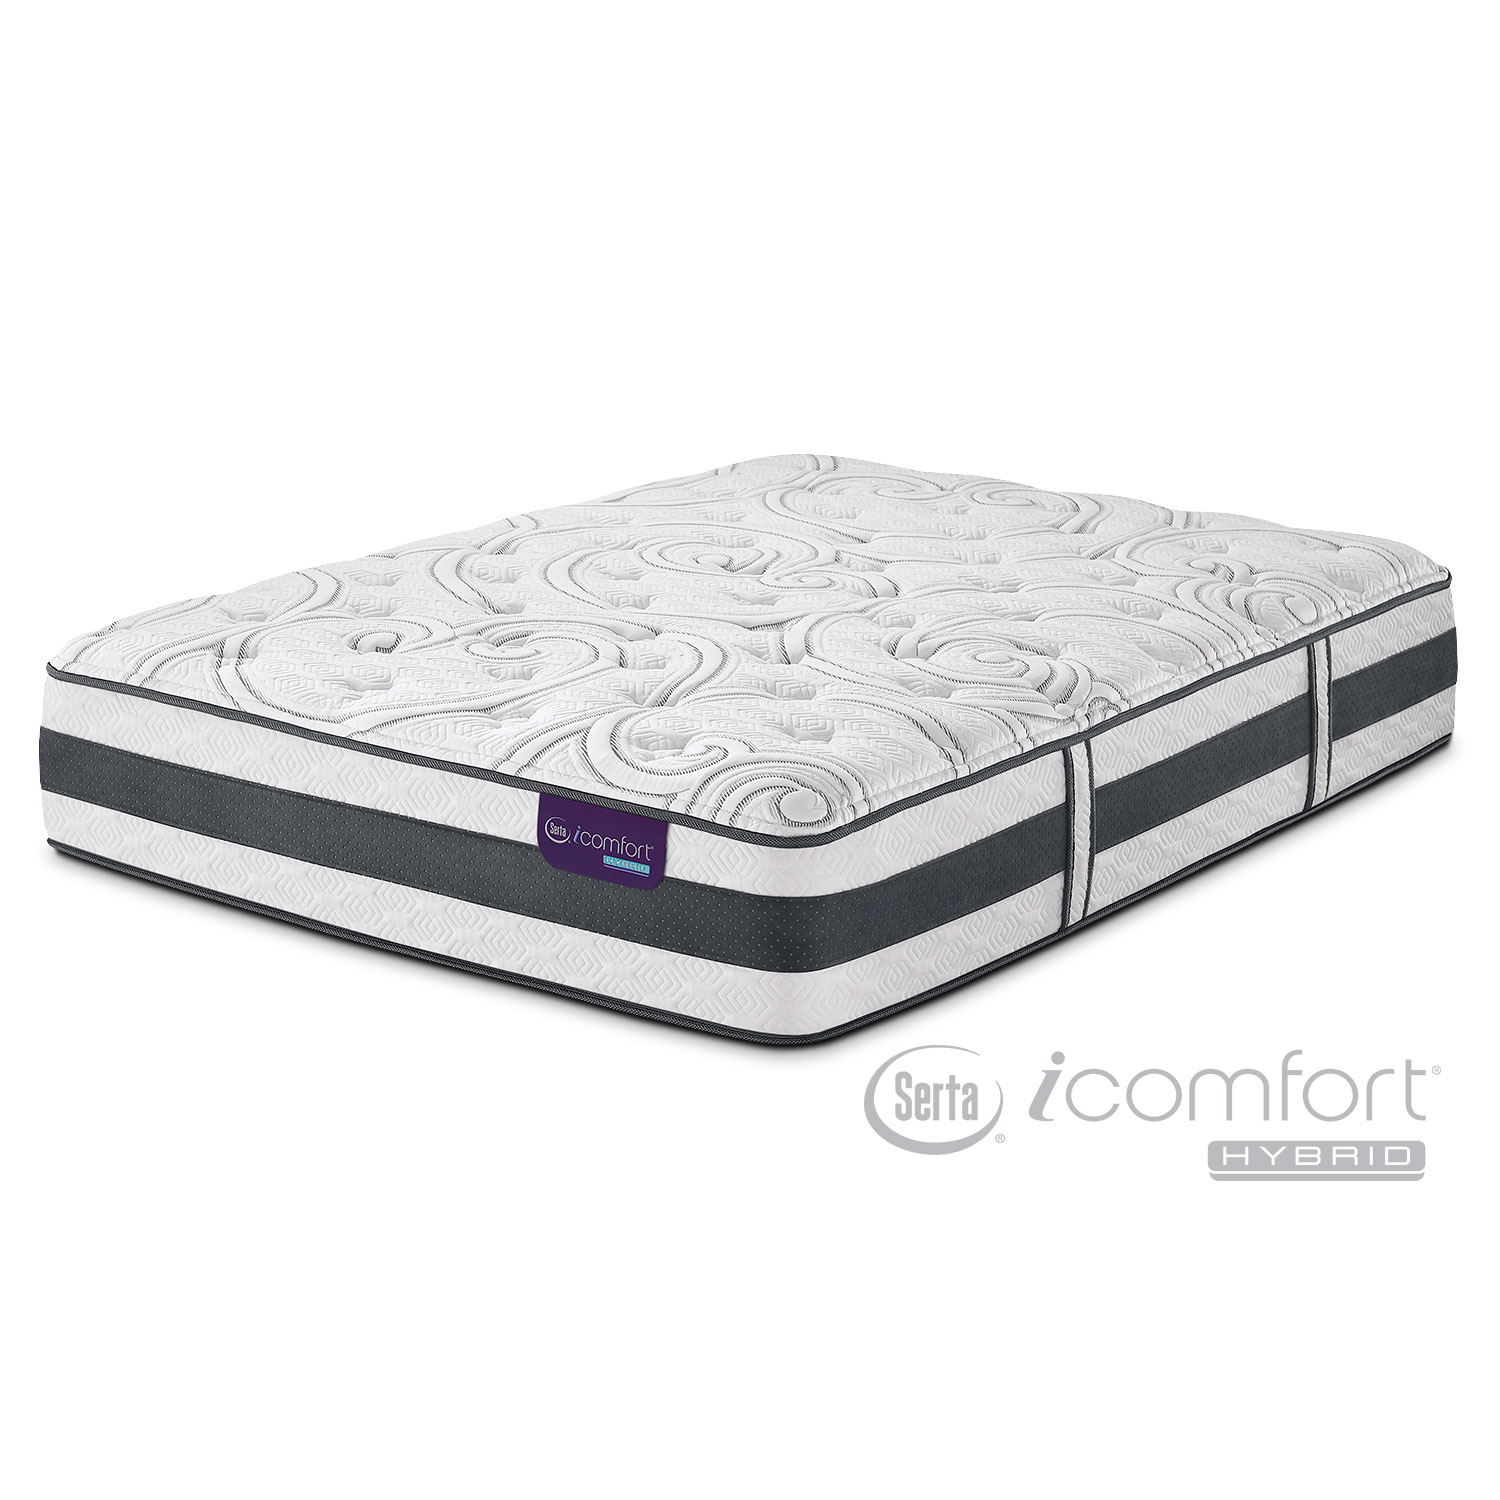 Mattresses and Bedding - Recognition Queen Mattress